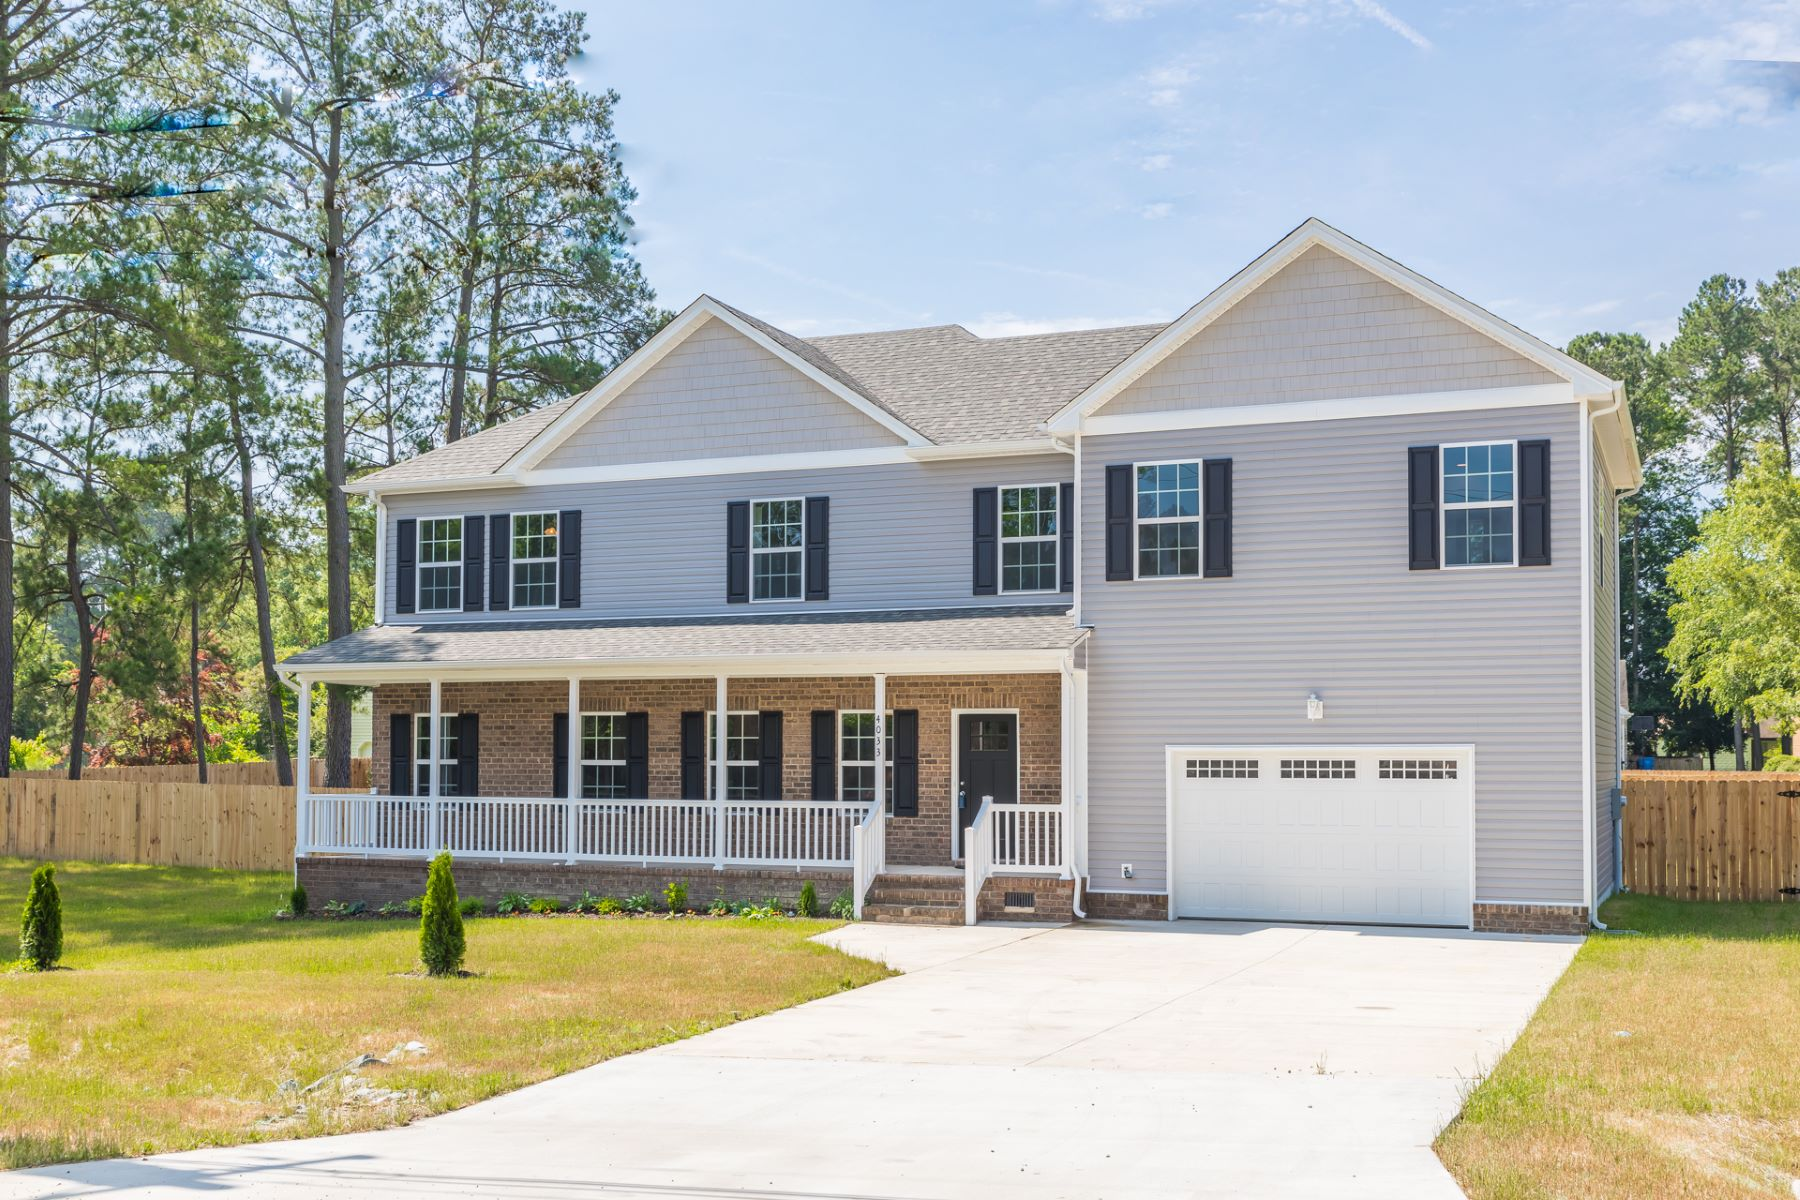 Single Family Homes for Sale at Western Branch 4033 Woodland Drive Chesapeake, Virginia 23321 United States